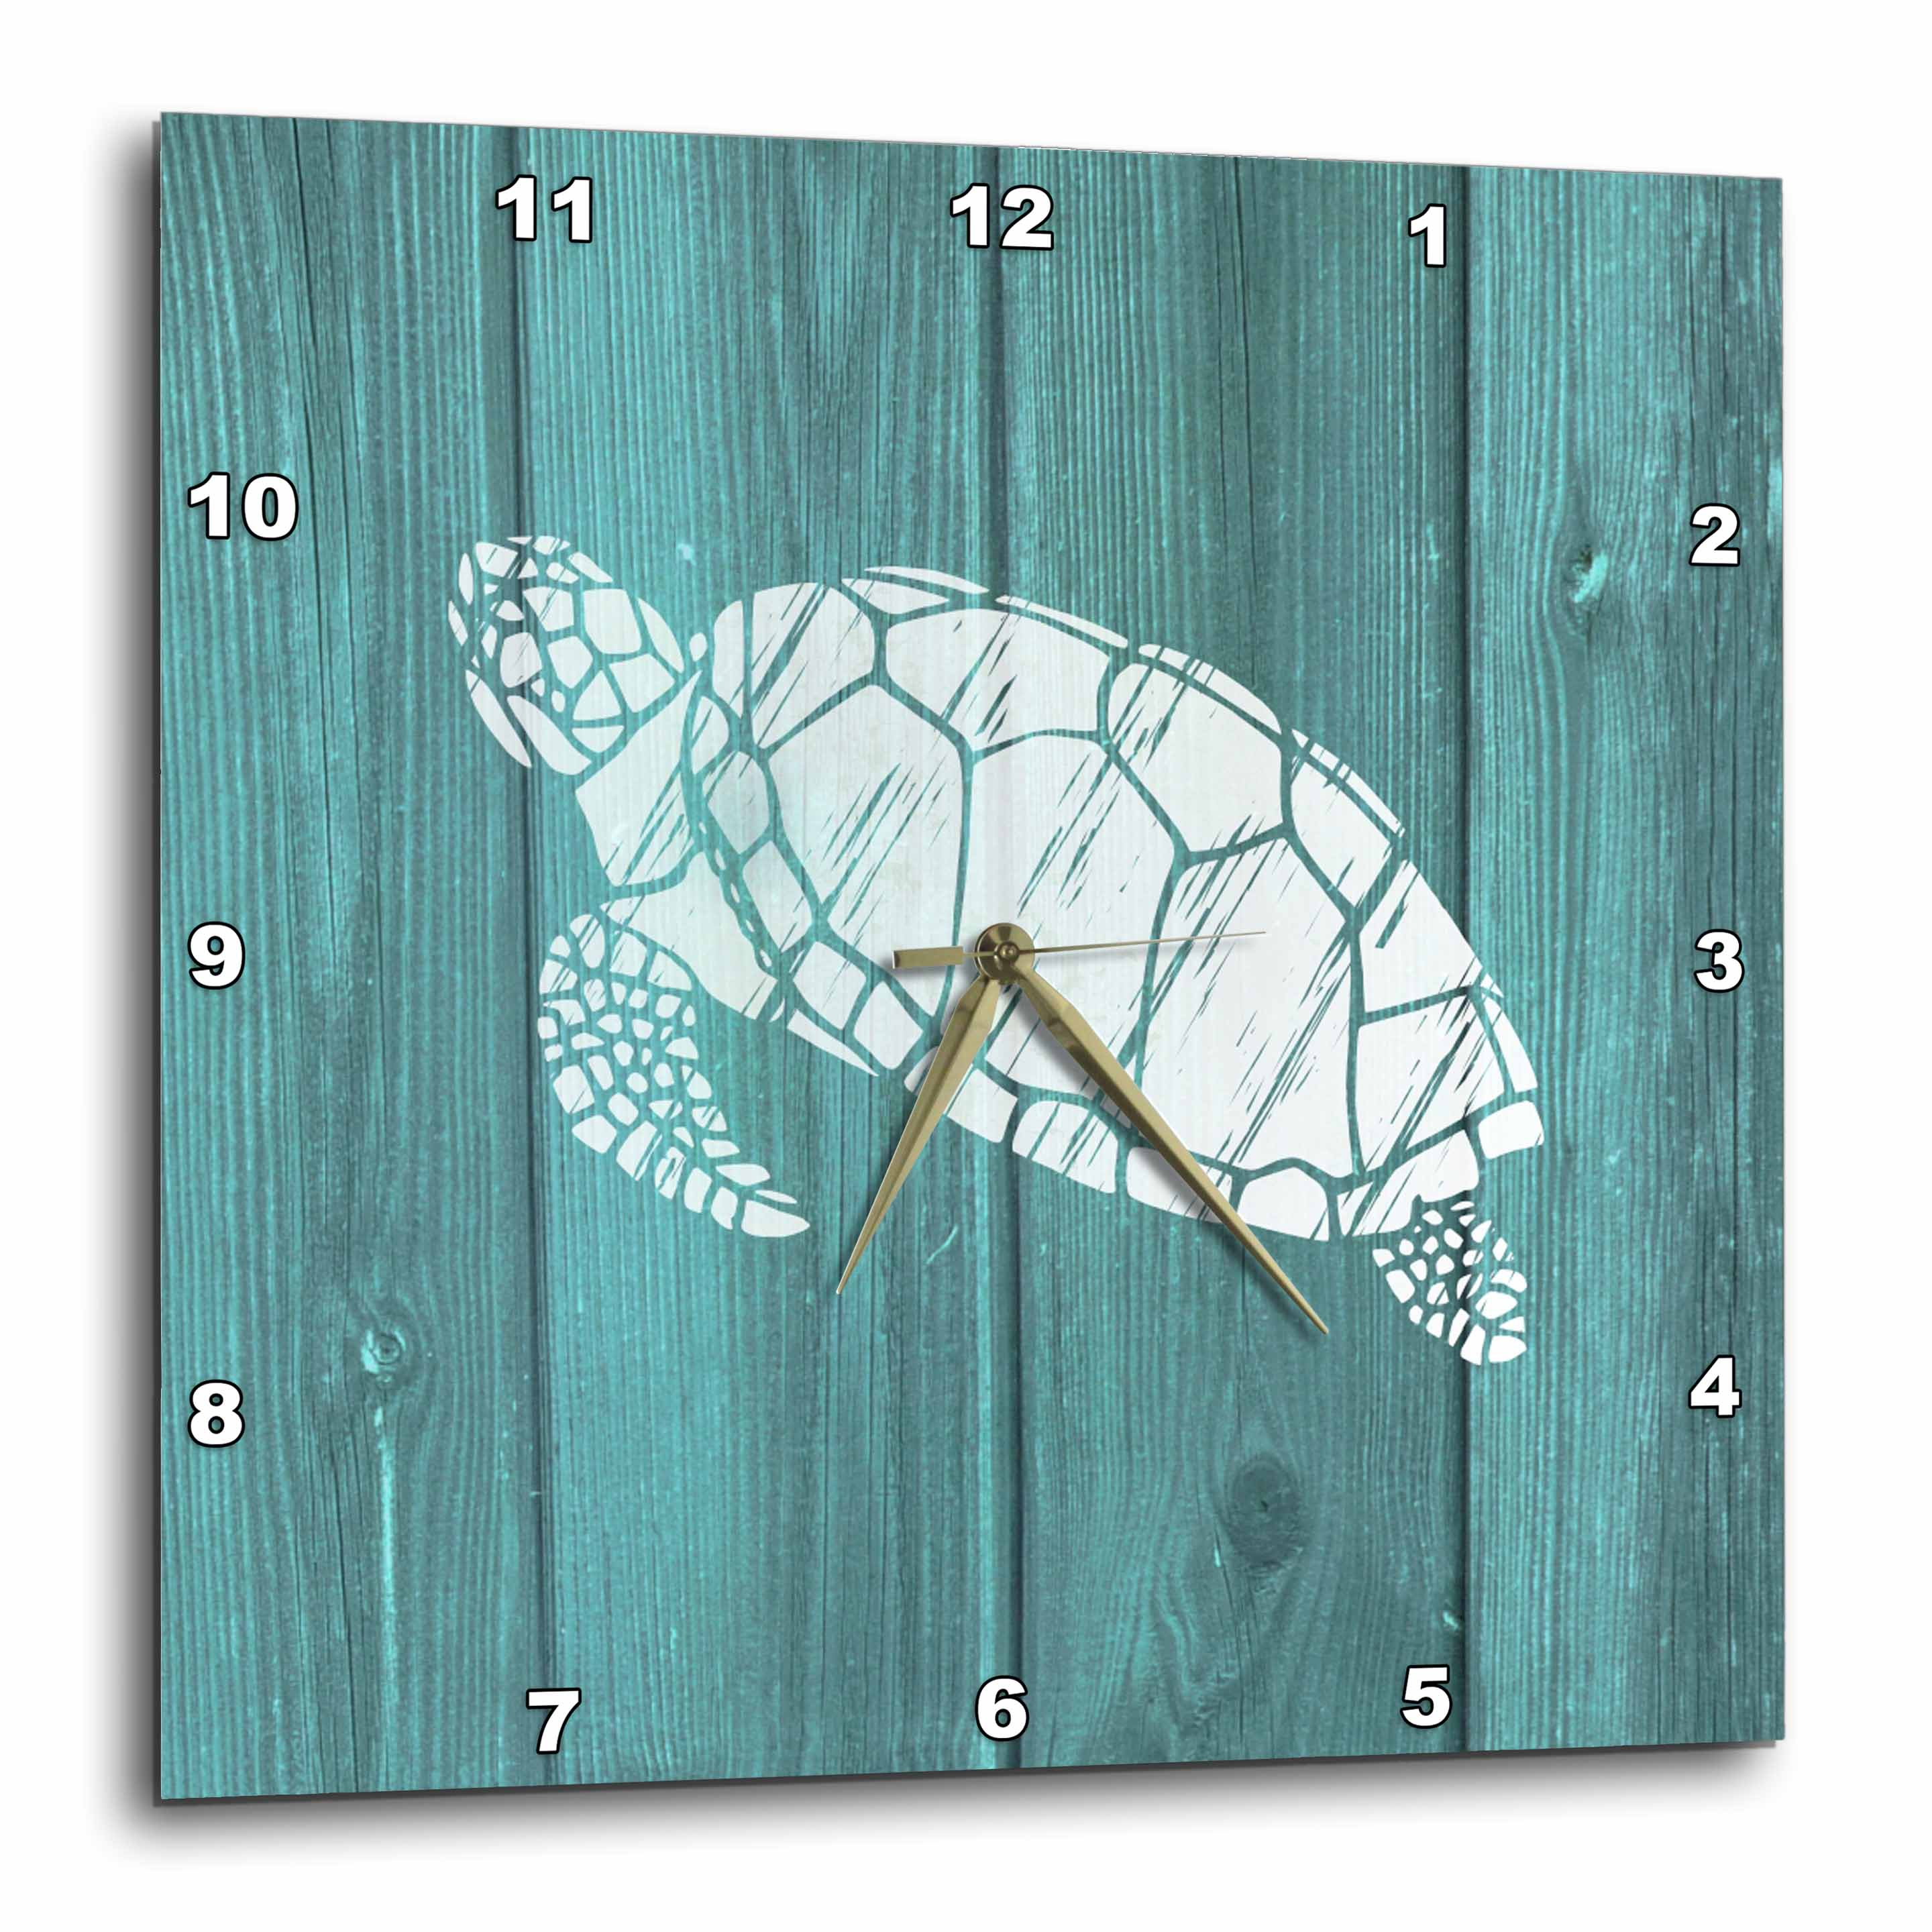 3dRose Turtle Stencil in White over Teal Weatherboard- not real wood, Wall Clock, 10 by 10-inch by 3dRose